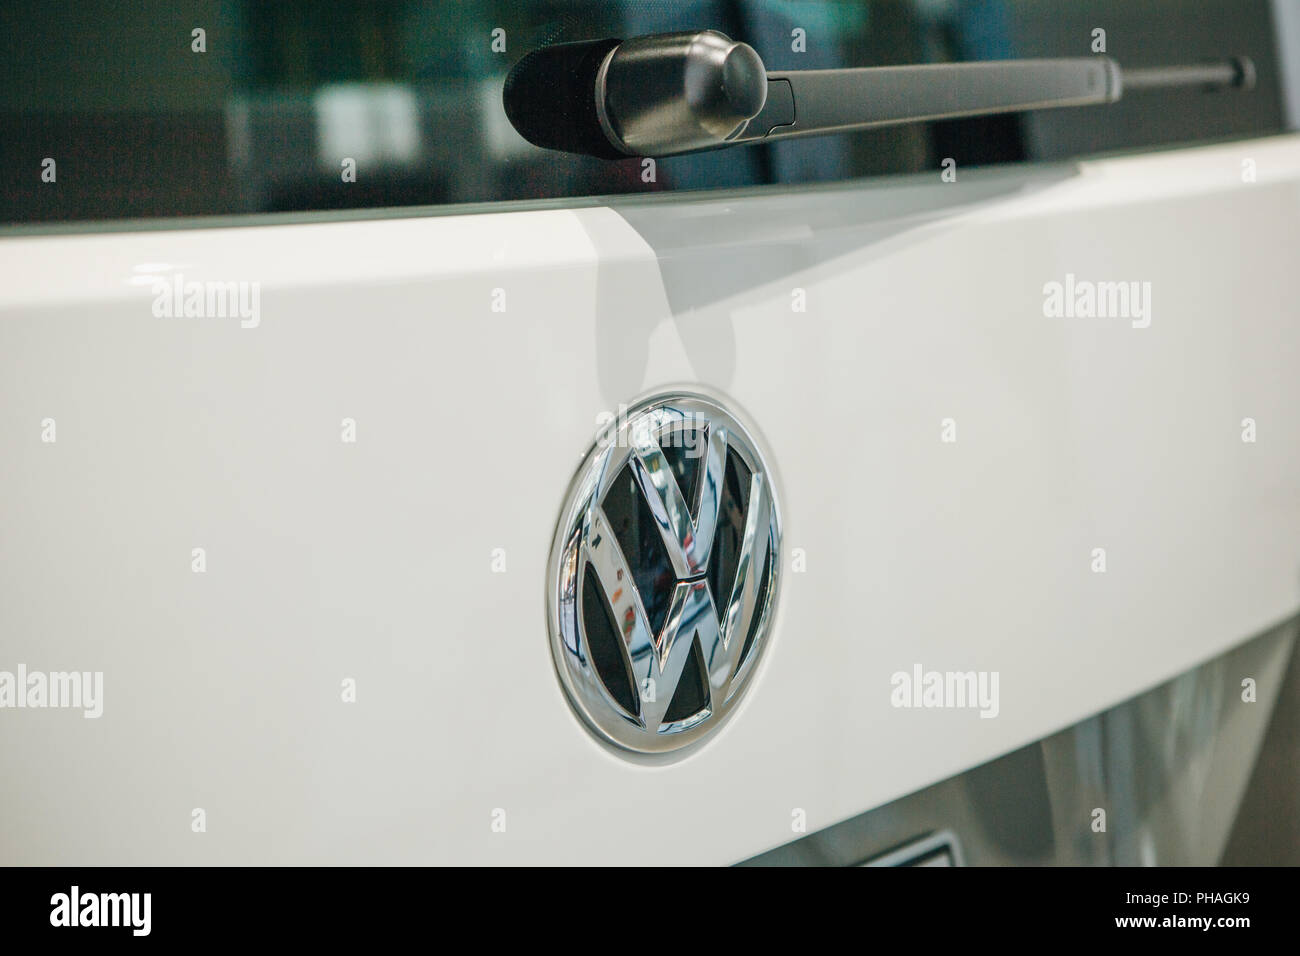 Berlin, August 29, 2018: Close-up sign VW on new Volkswagen